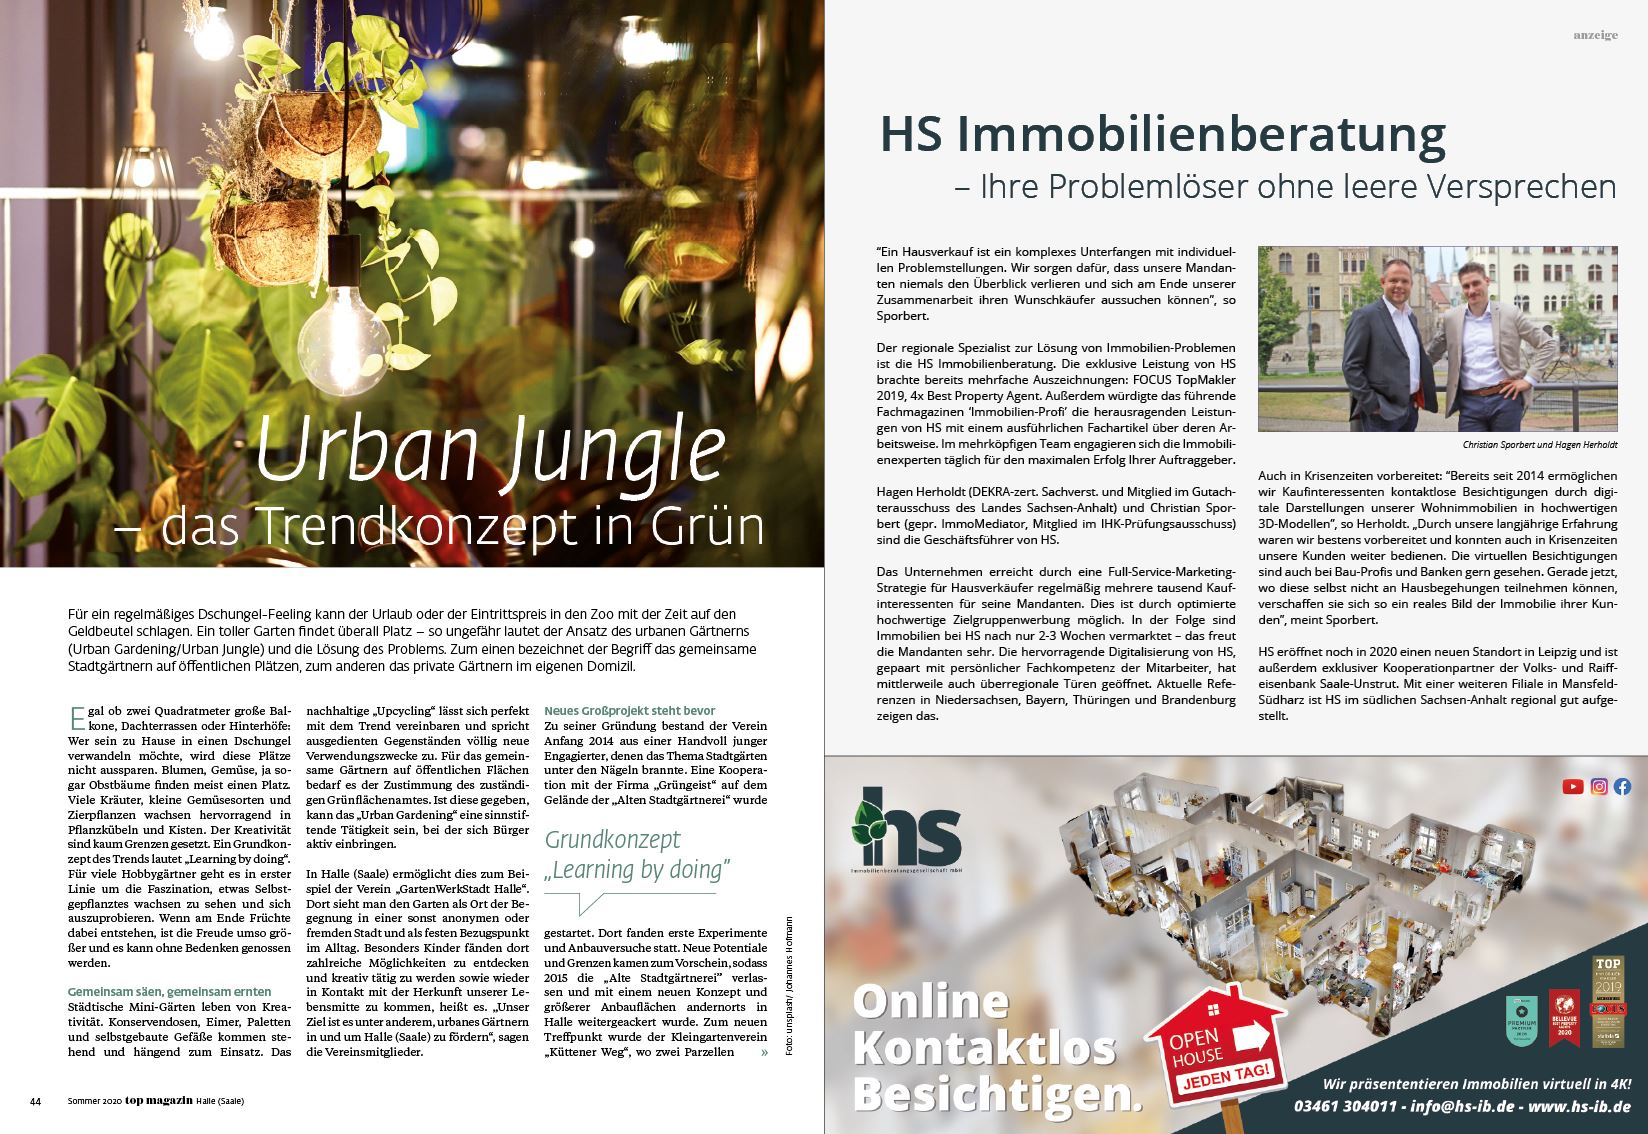 HS Immobilienberatung im TOP Magazin Halle